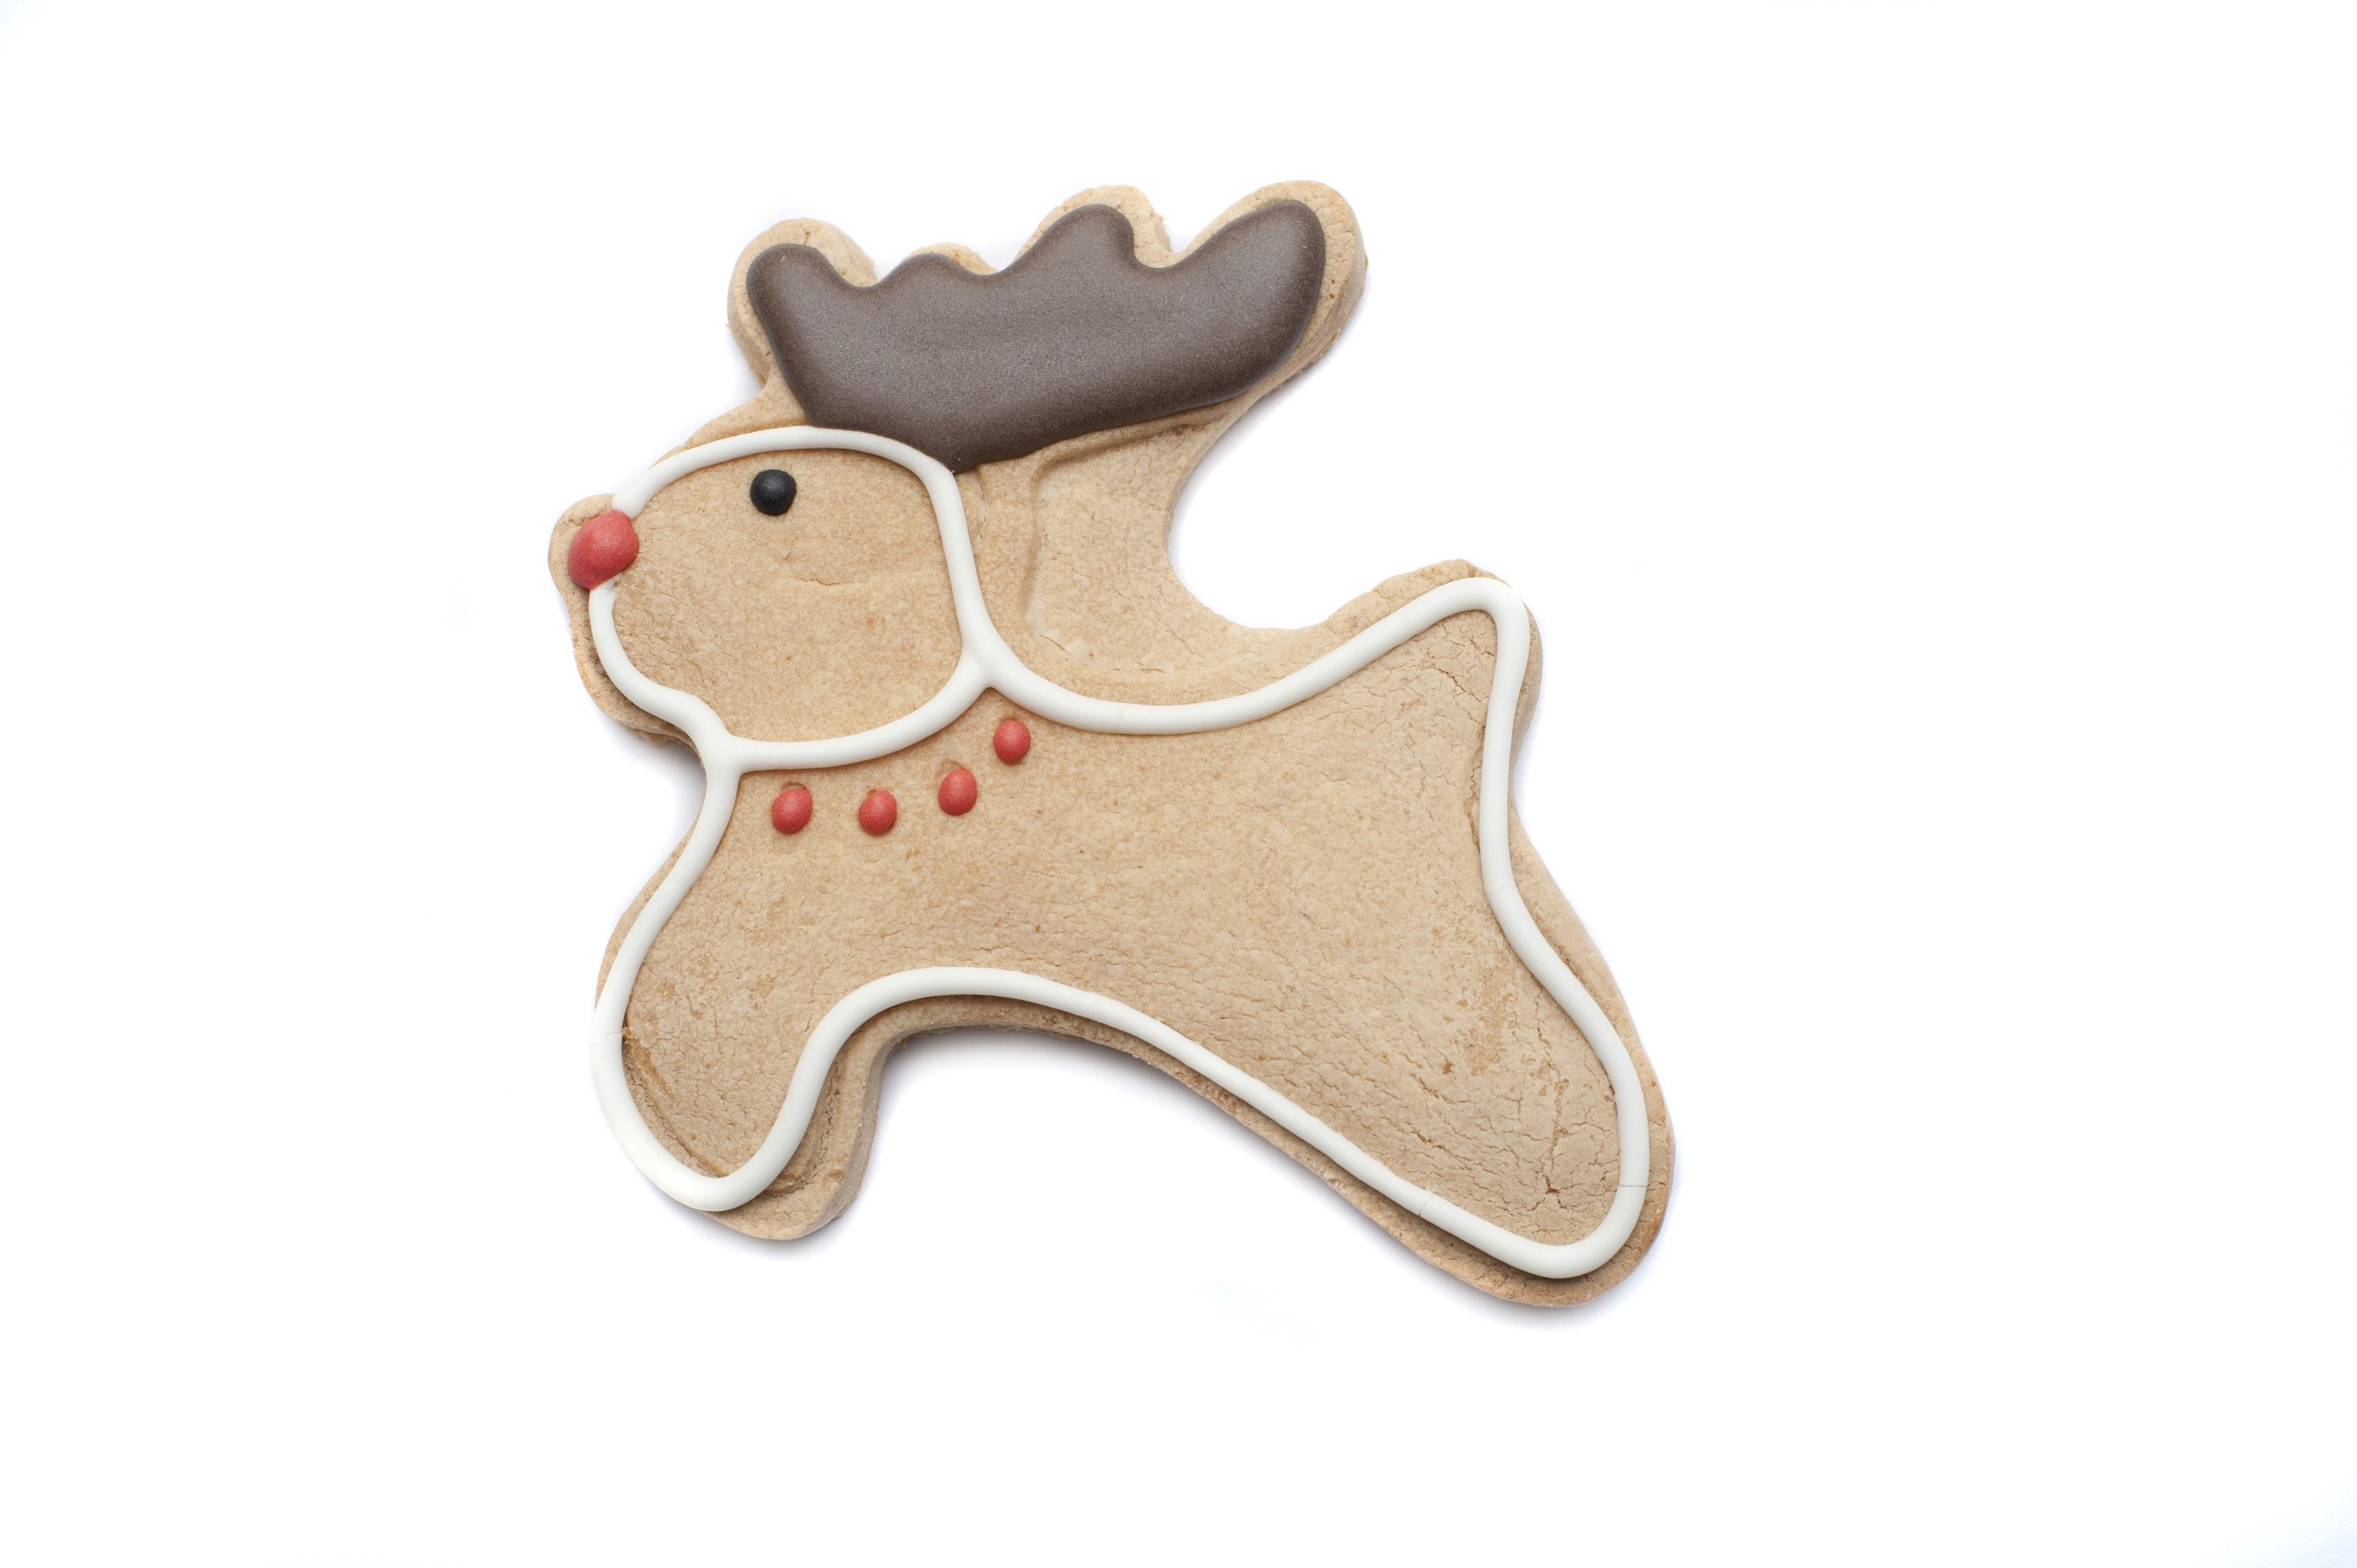 Reindeer Christmas gingerbread cookie with a cute red nose and decorated chocolate antlers isolated on white